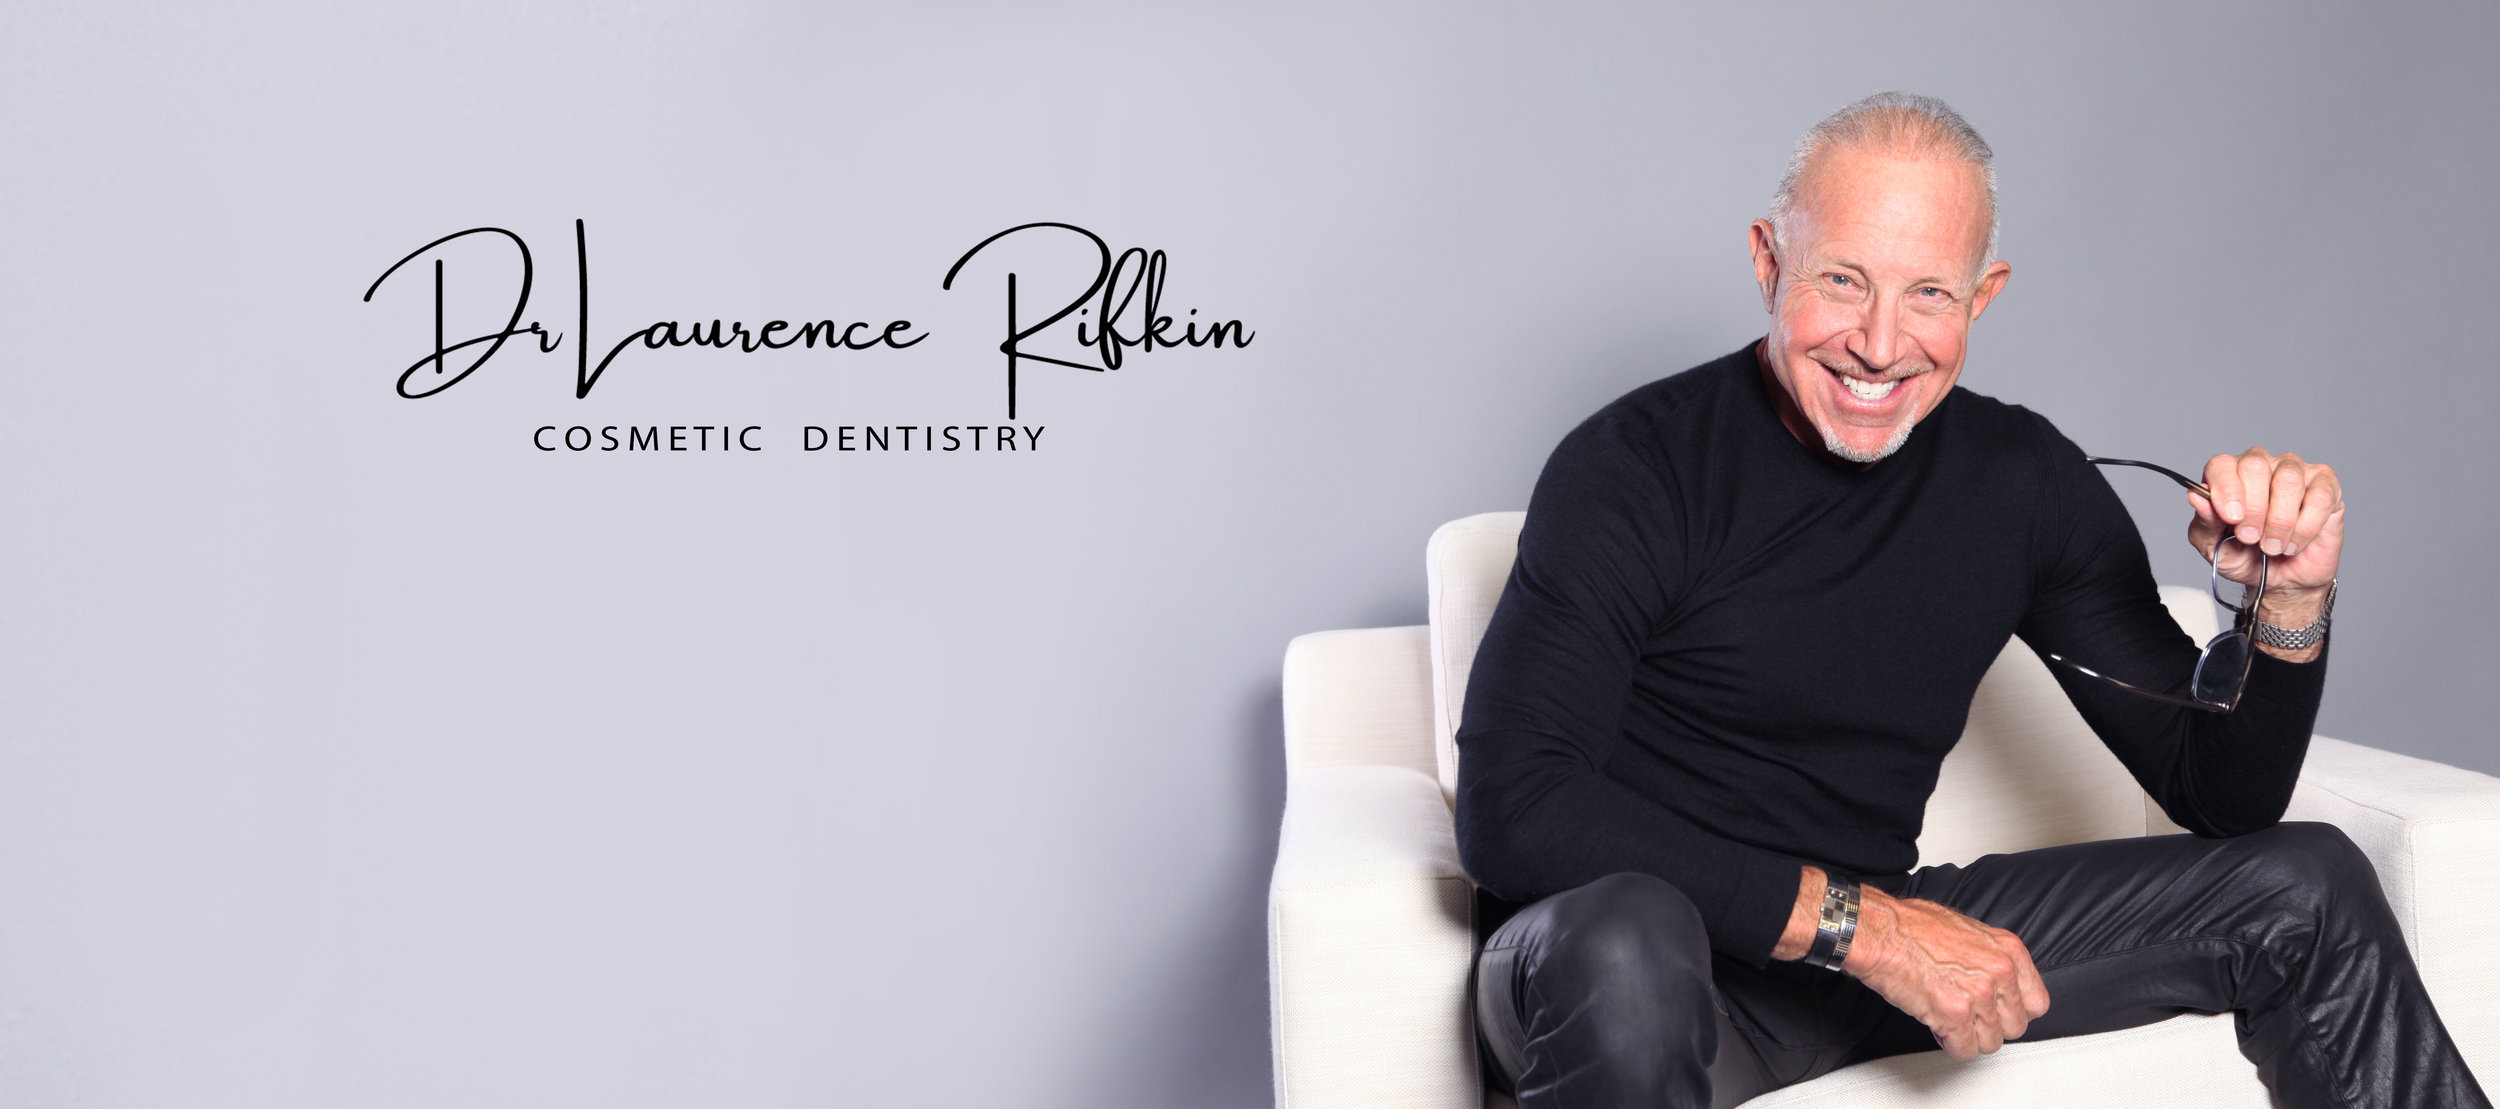 Dr Laurence Rifkin Dds